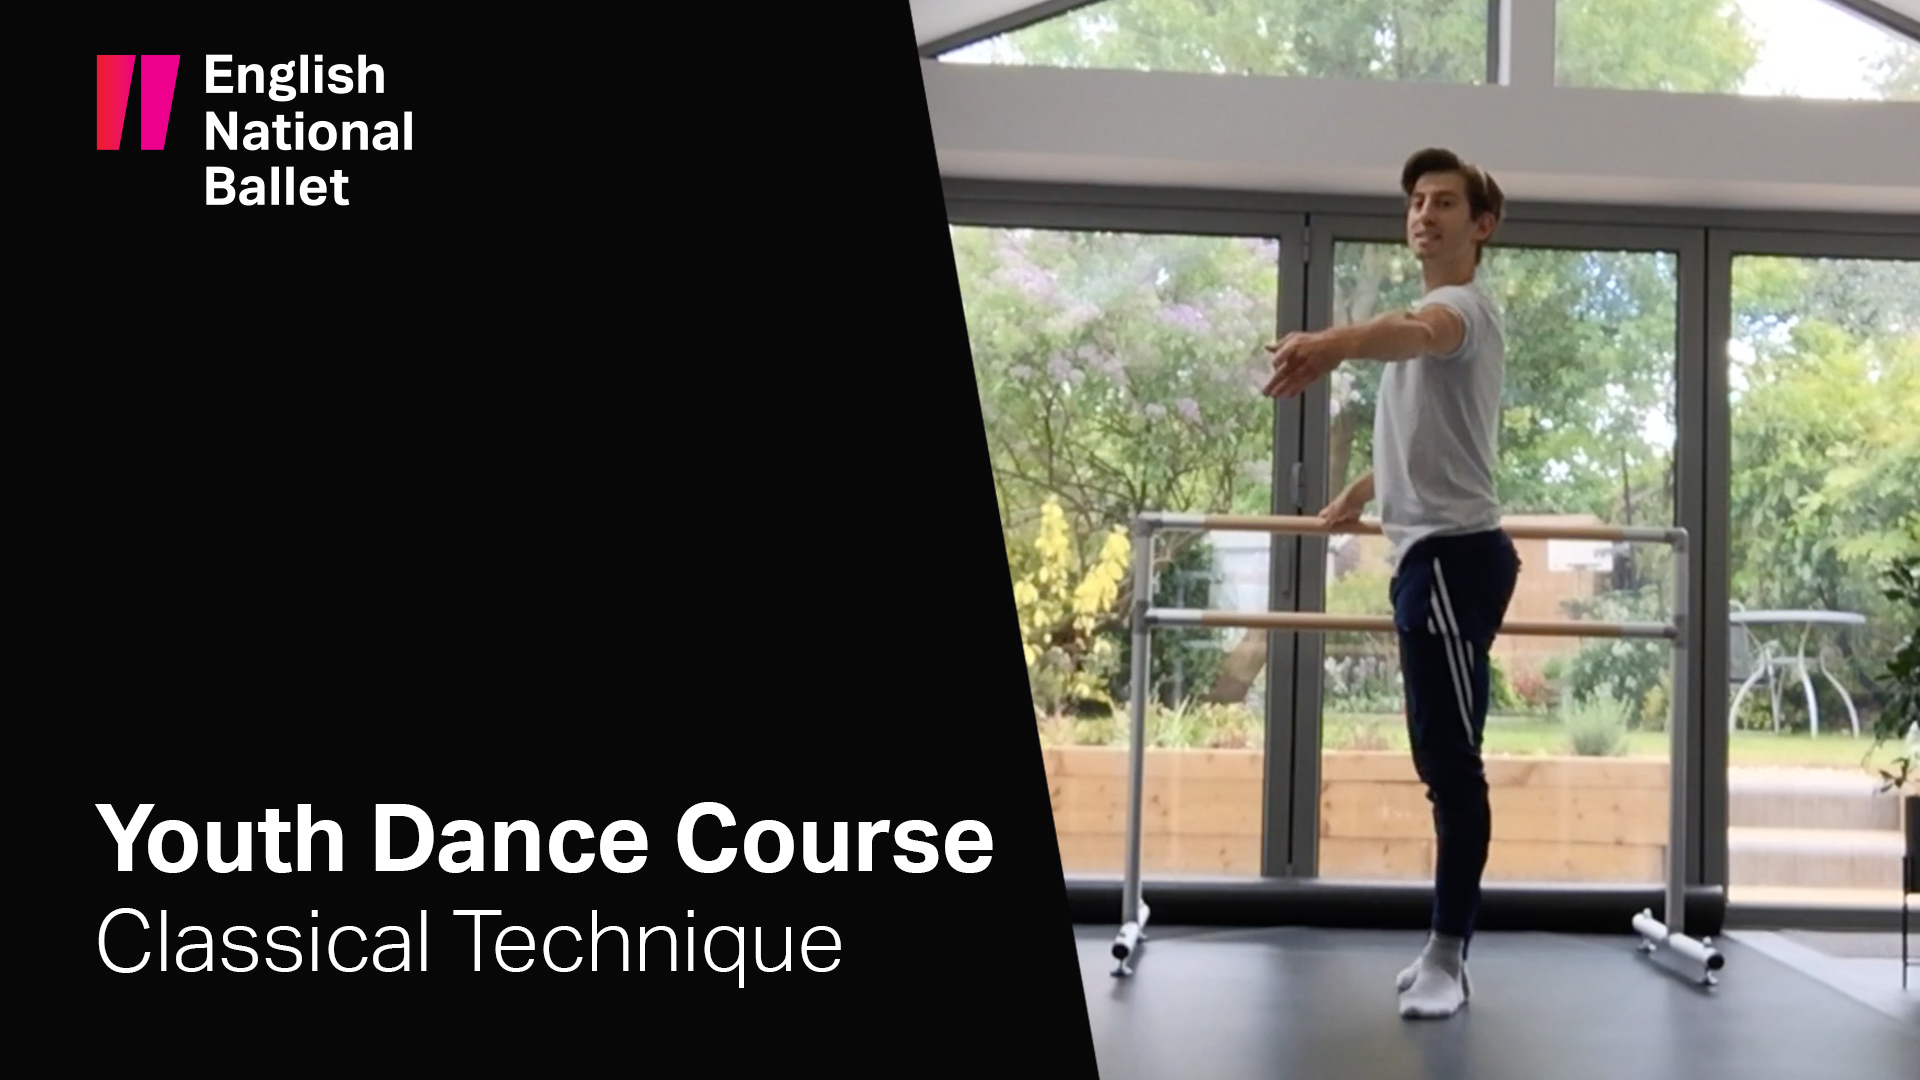 Youth Dance Course: Classical Technique | English National Ballet